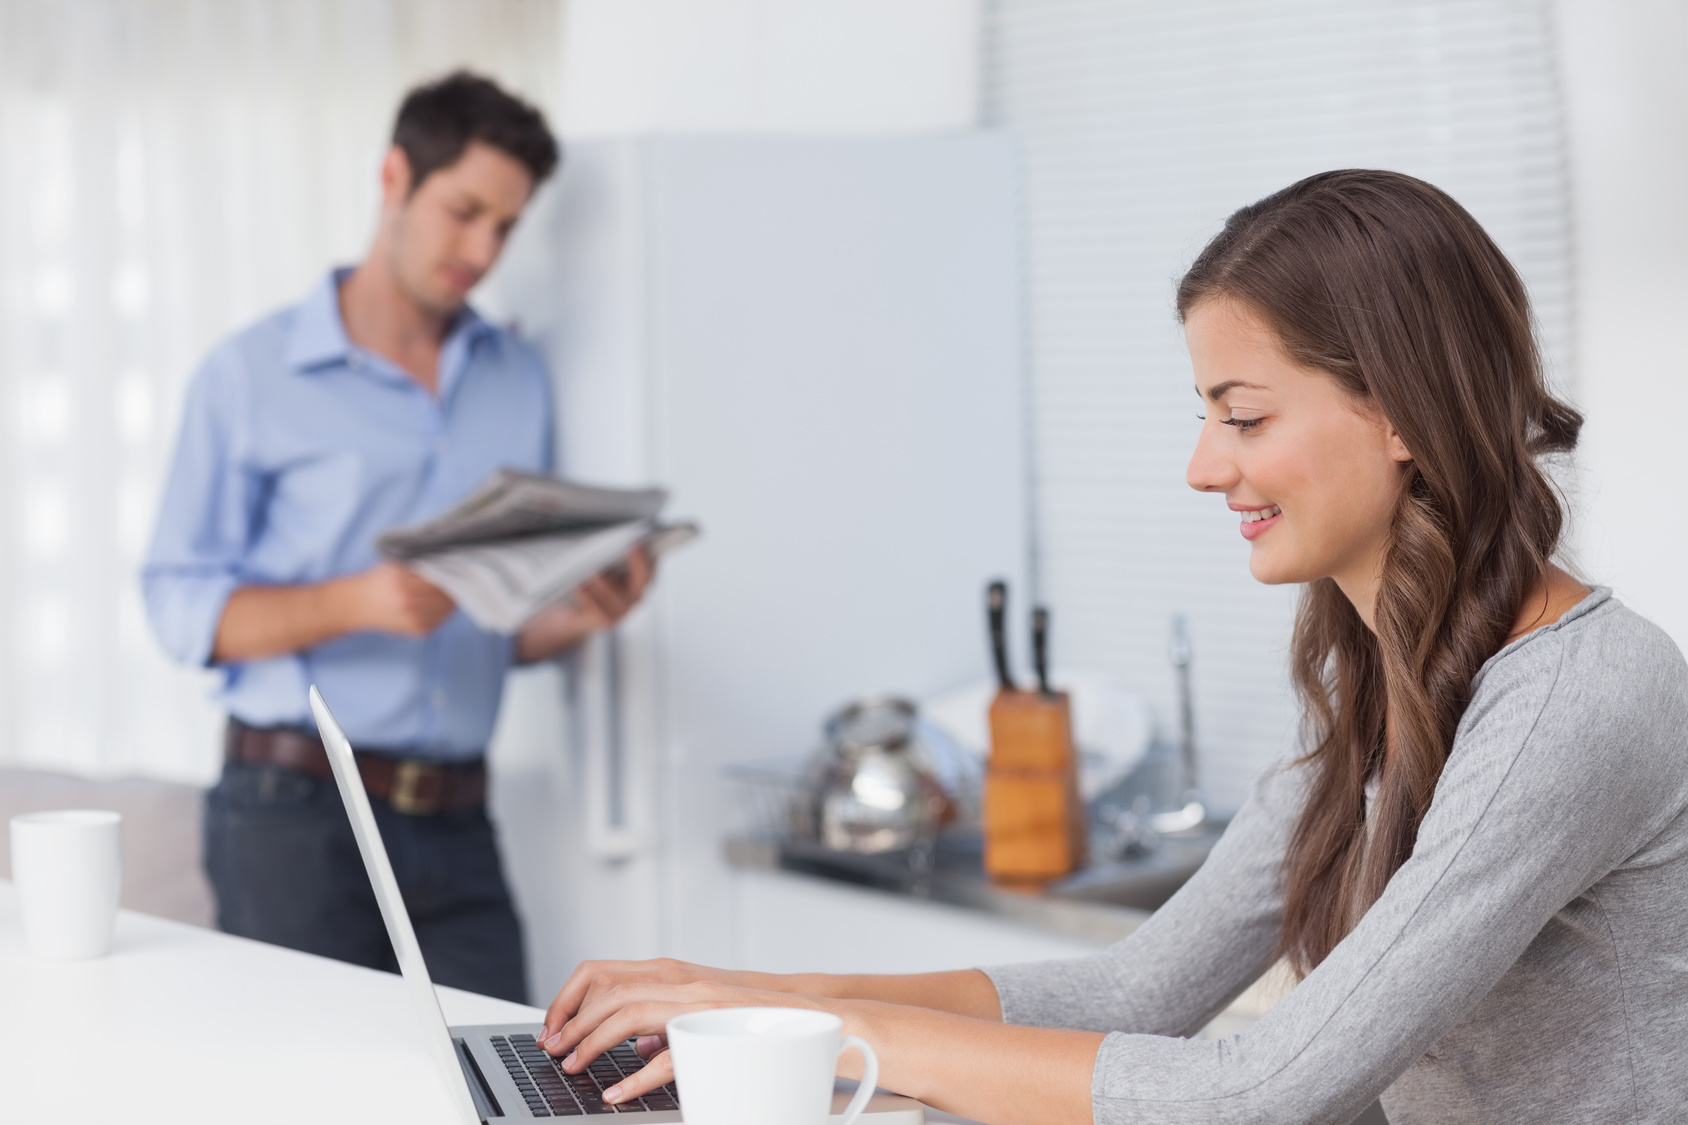 Attractive woman using her laptop in the kitchen with her husband reading a newspaper on the background